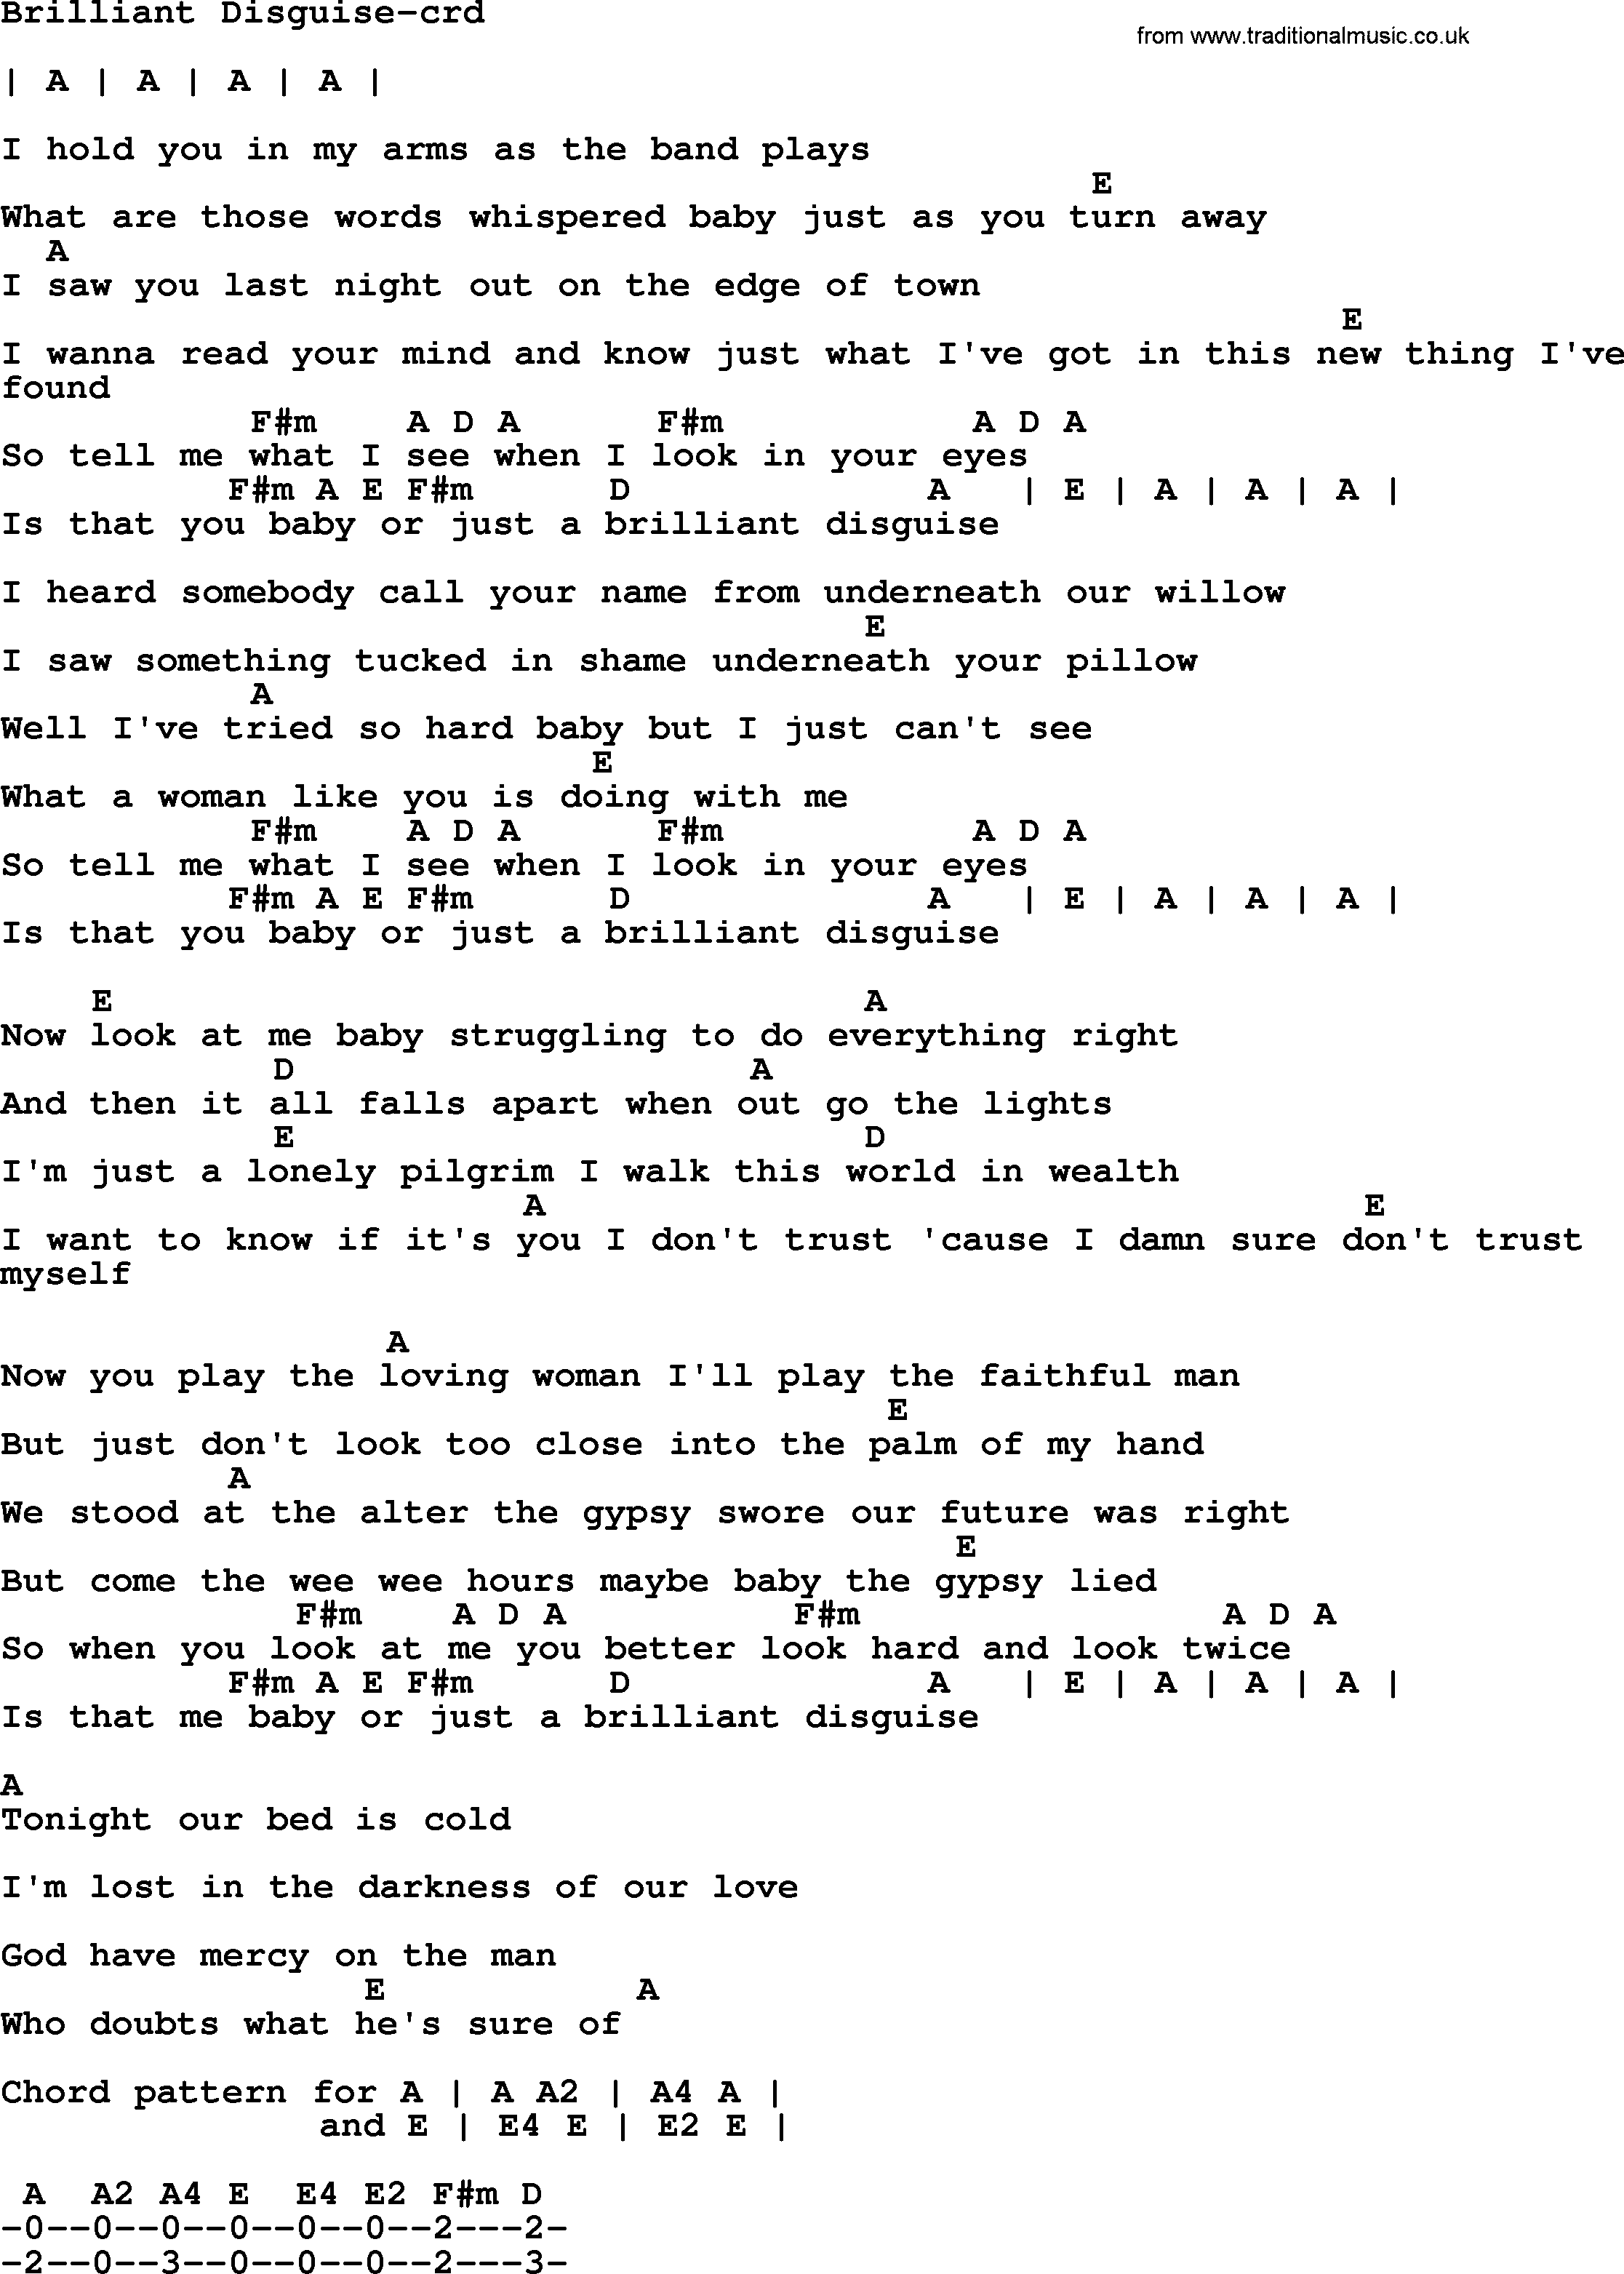 Bruce Springsteen Song Brilliant Disguise Lyrics And Chords